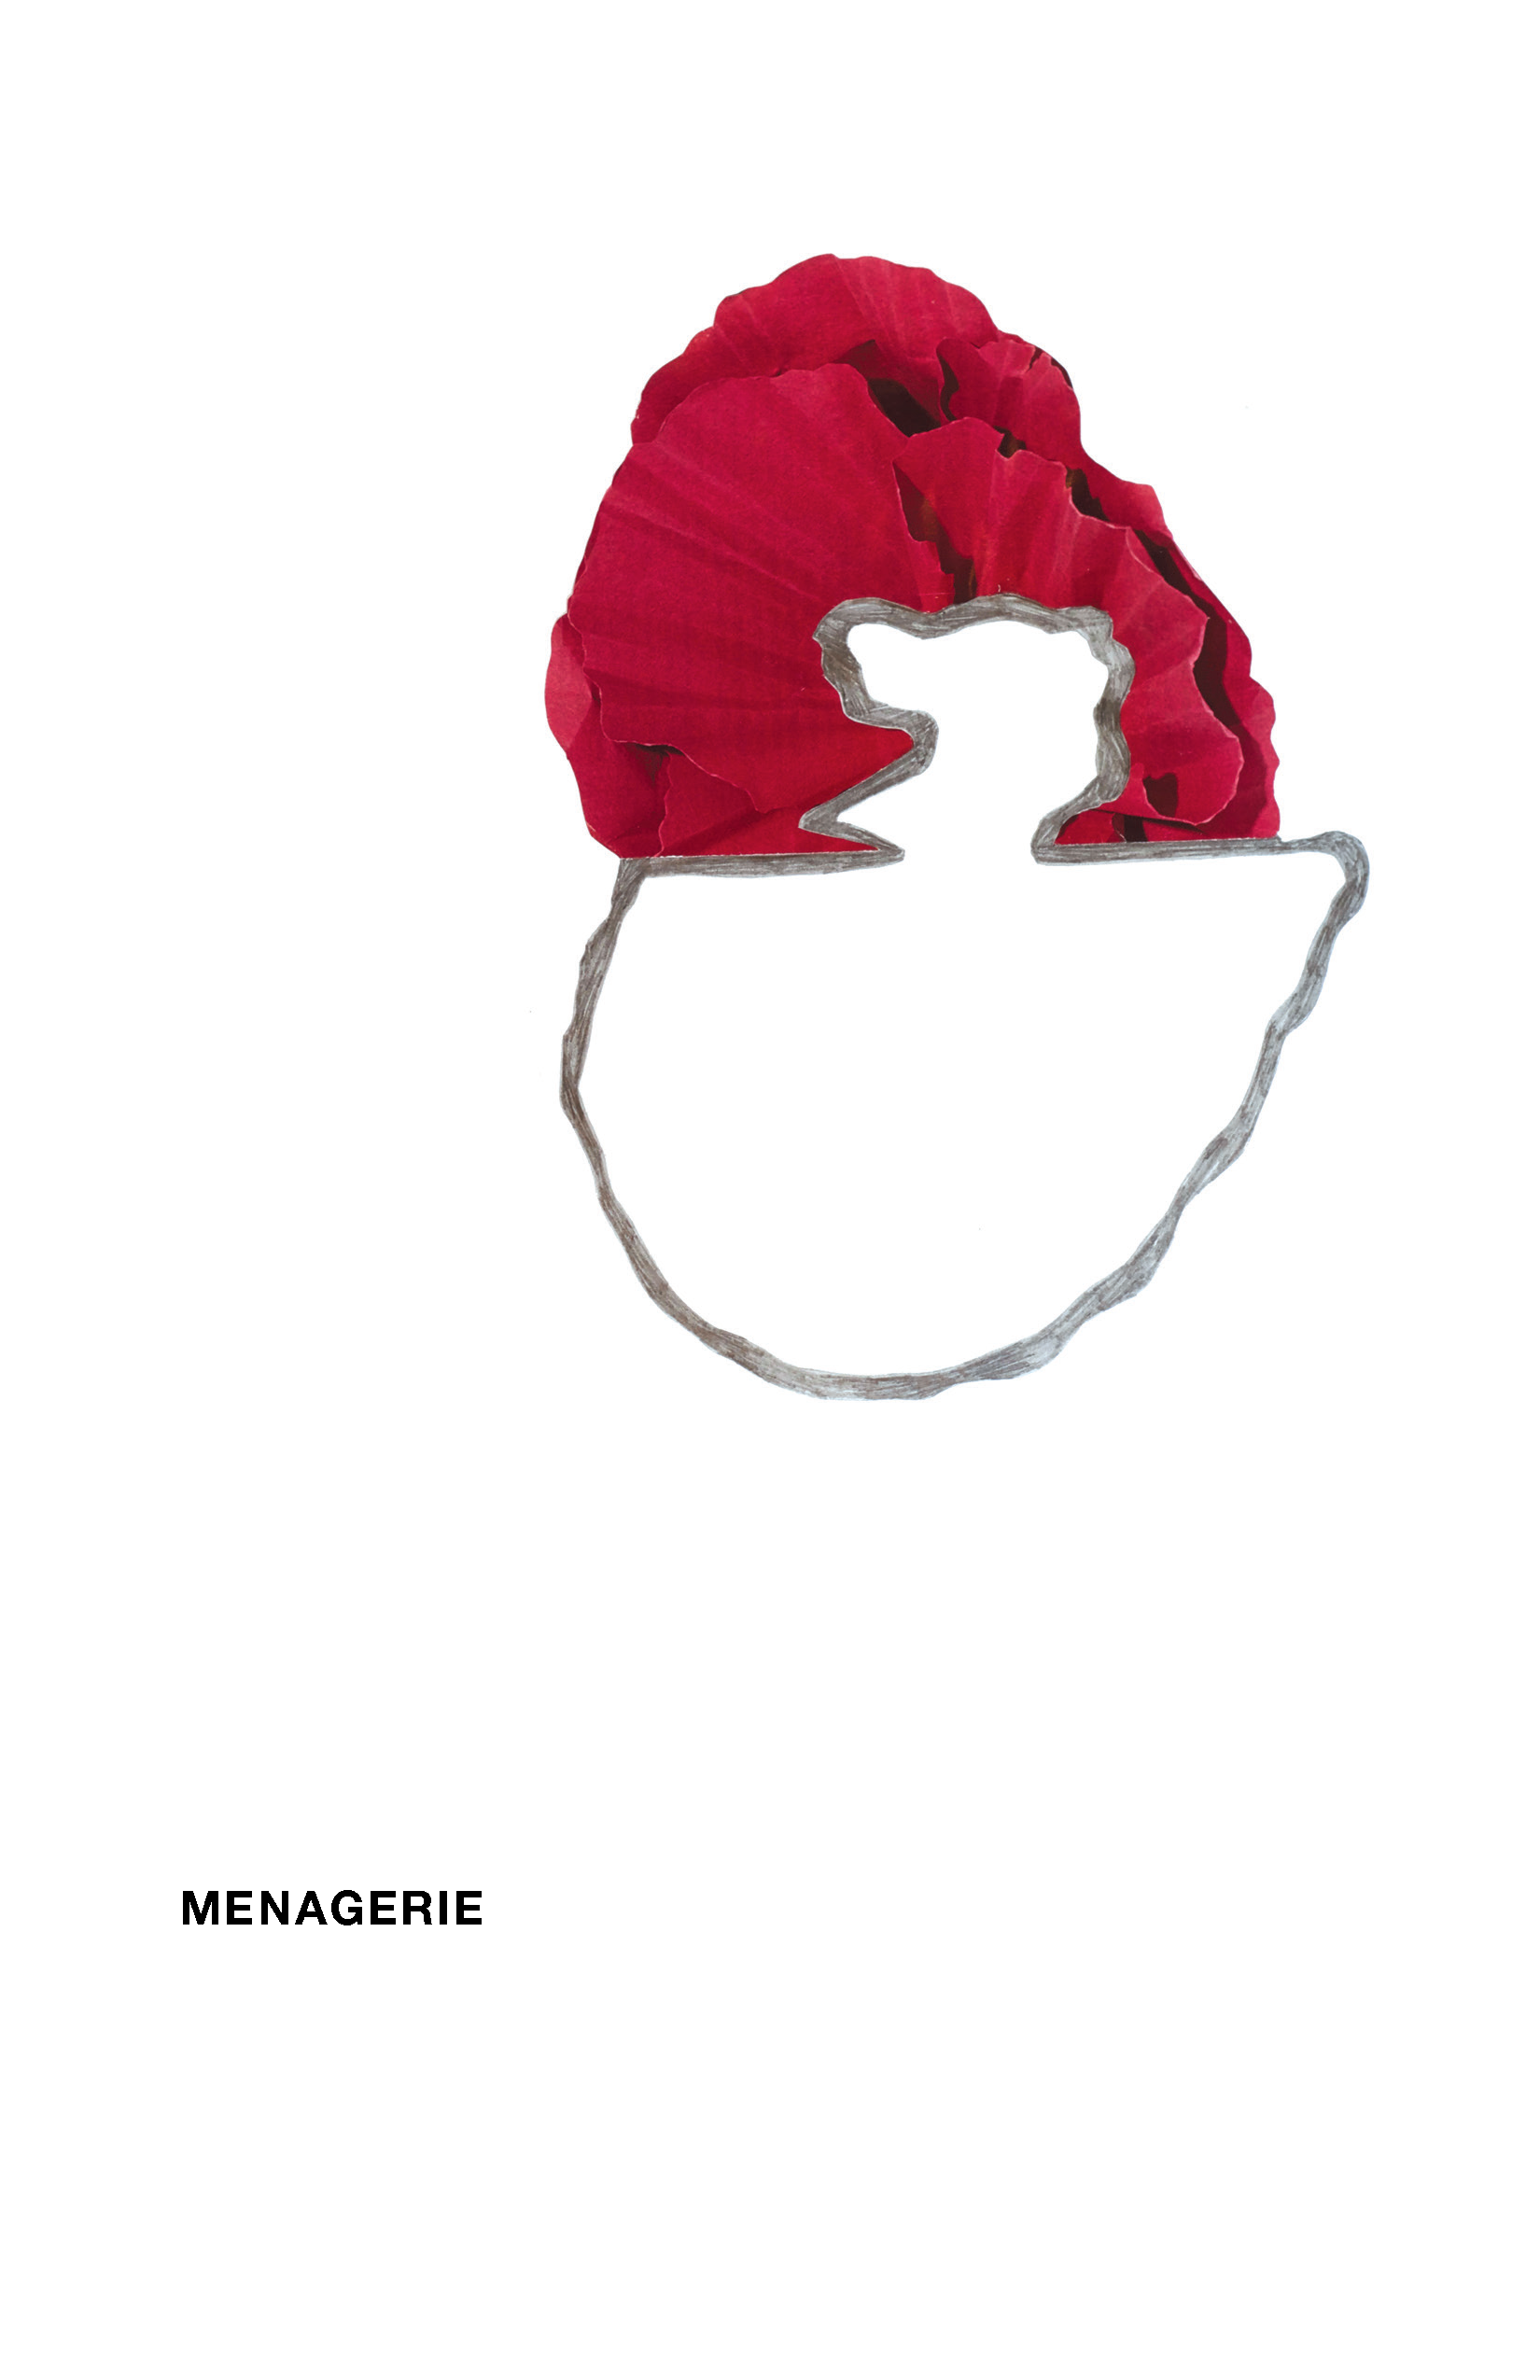 Menagerie_Full_Page_01.png